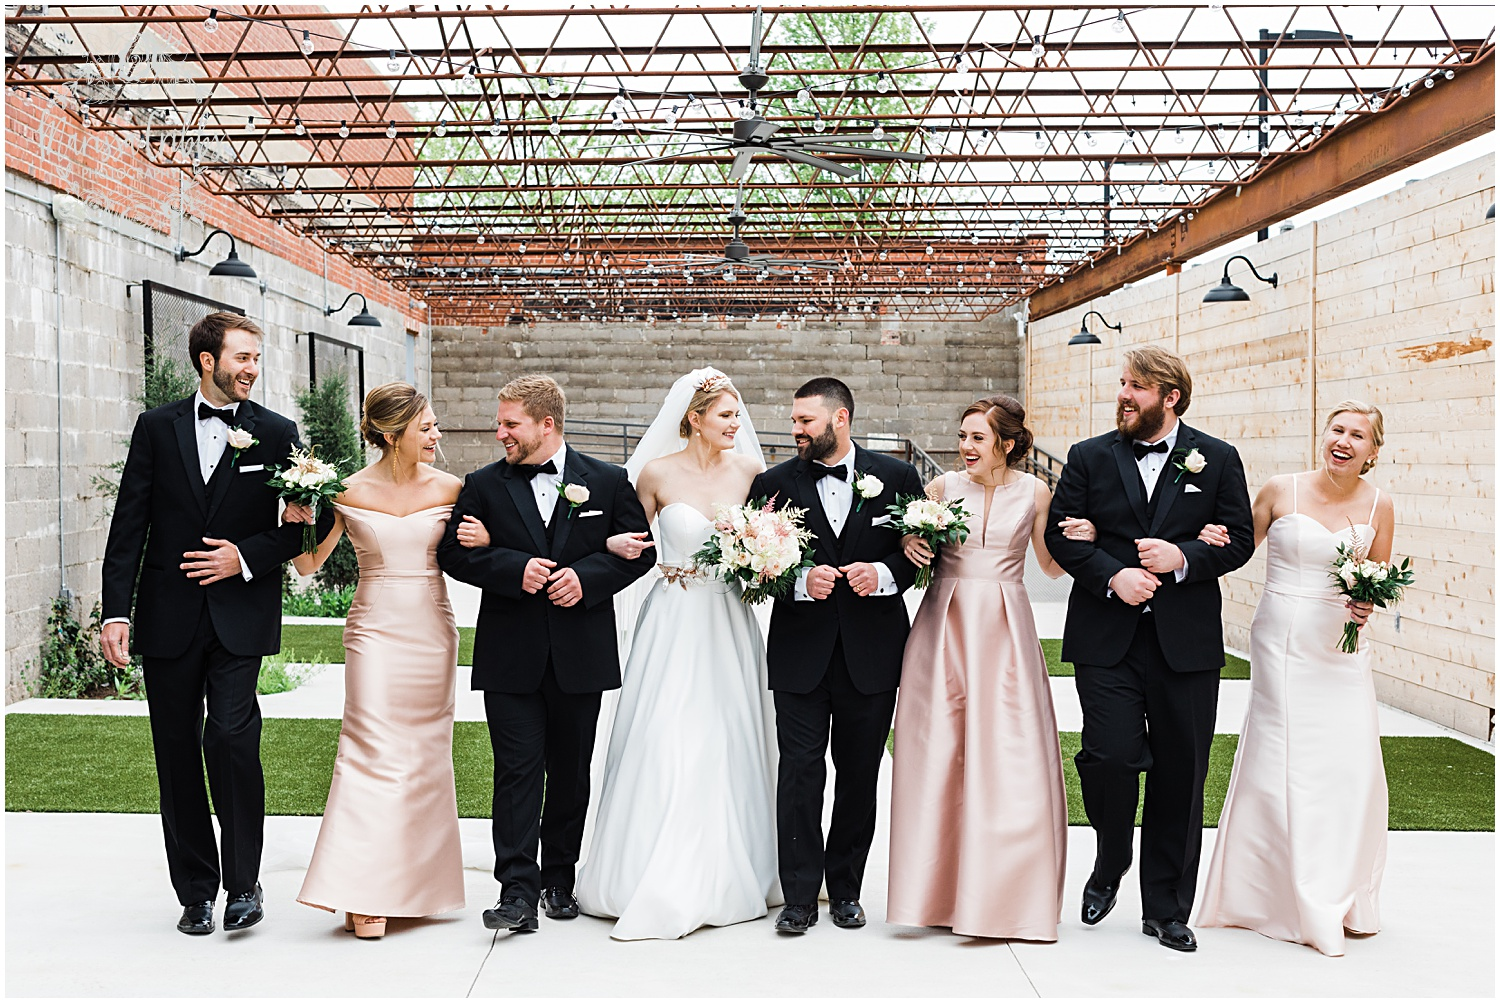 ABBY & CHARLIE WEDDING | THE HUDSON EVENT SPACE WEDDING | MARISSA CRIBBS PHOTOGRAPHY_7523.jpg